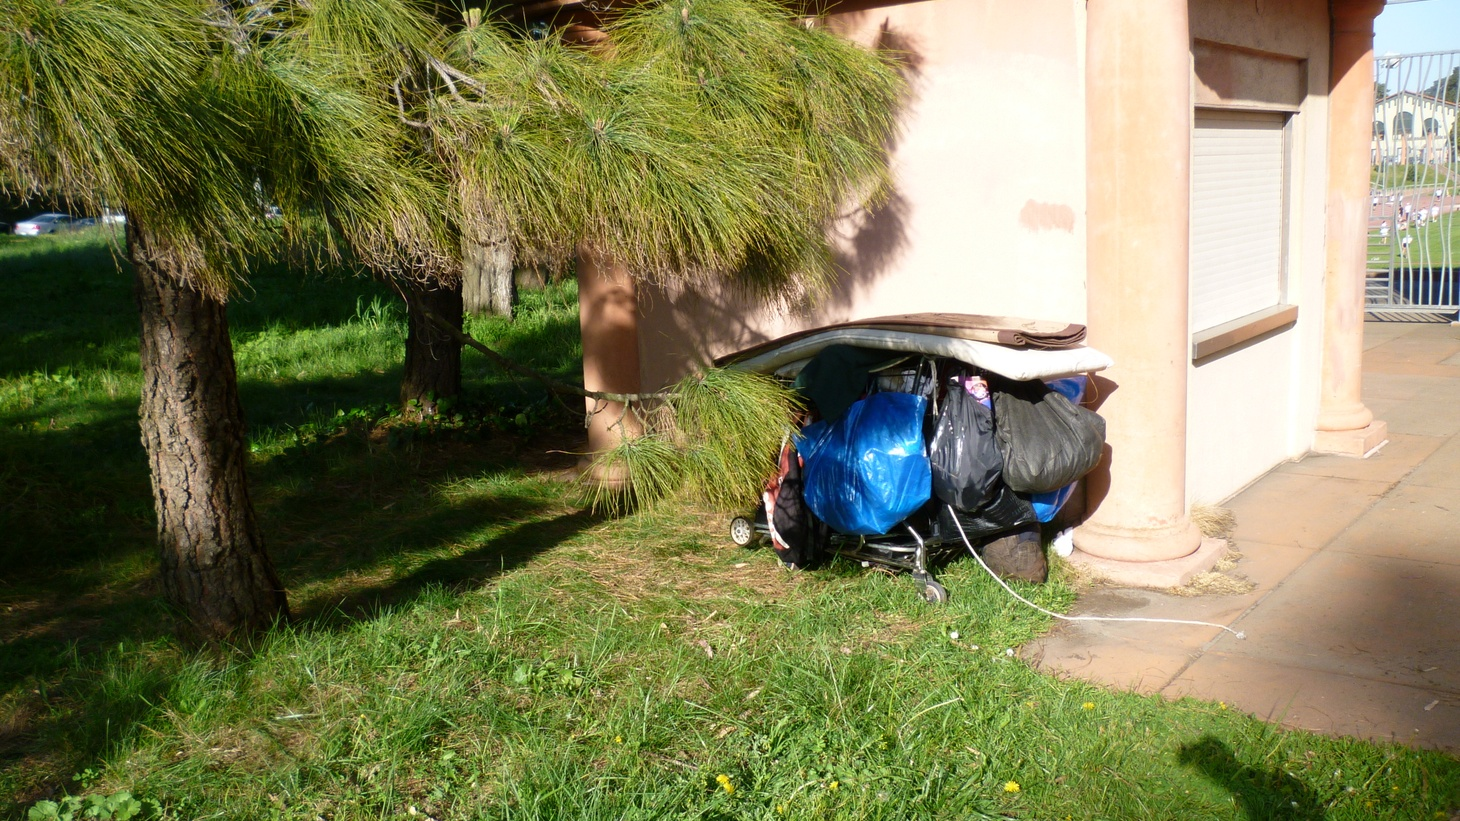 A shopping cart filled with belongings of an unsheltered person.